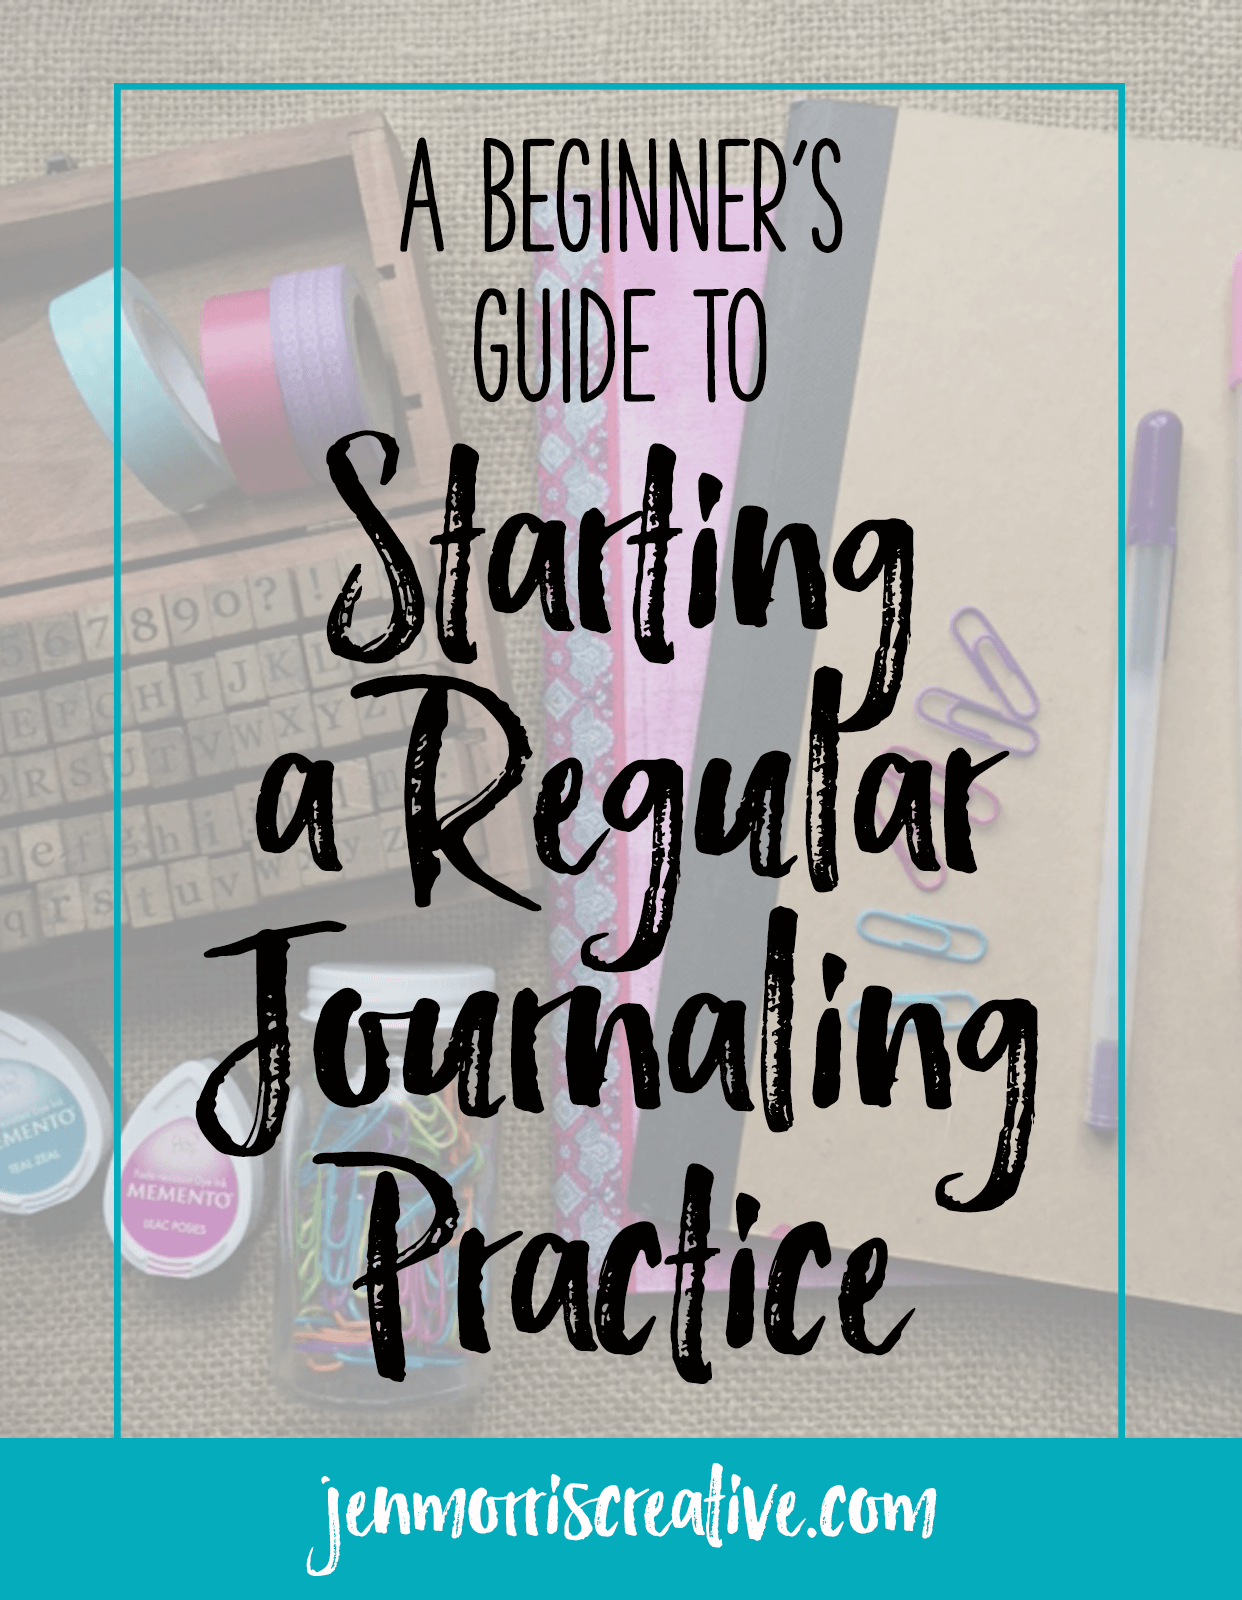 A simple step-by-step guide to starting a regular journaling practice - Jen Morris Creative